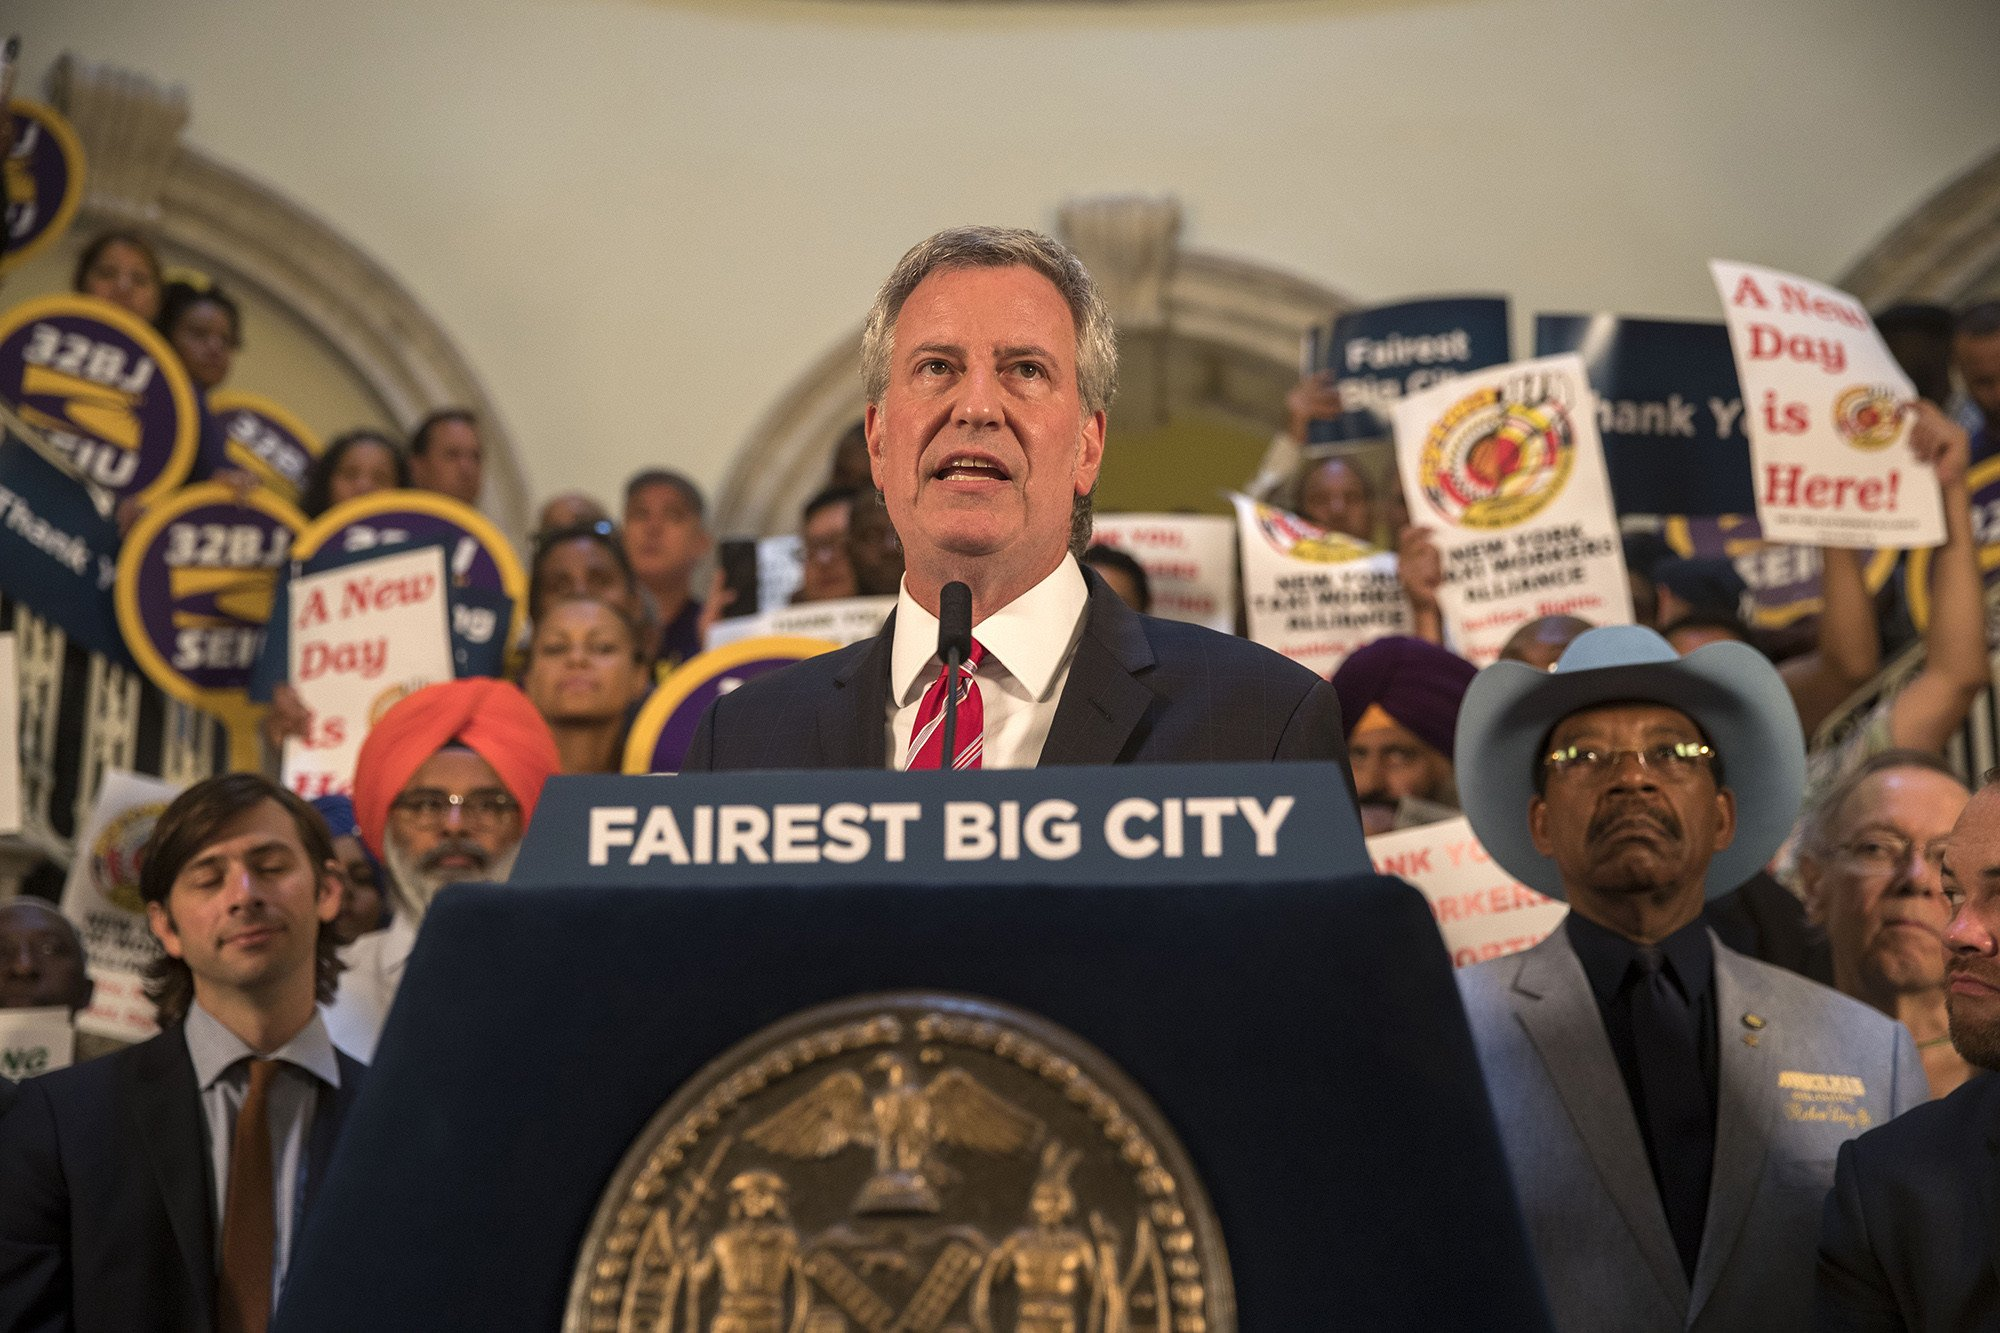 Small donors would have huge say under de Blasio commission proposal